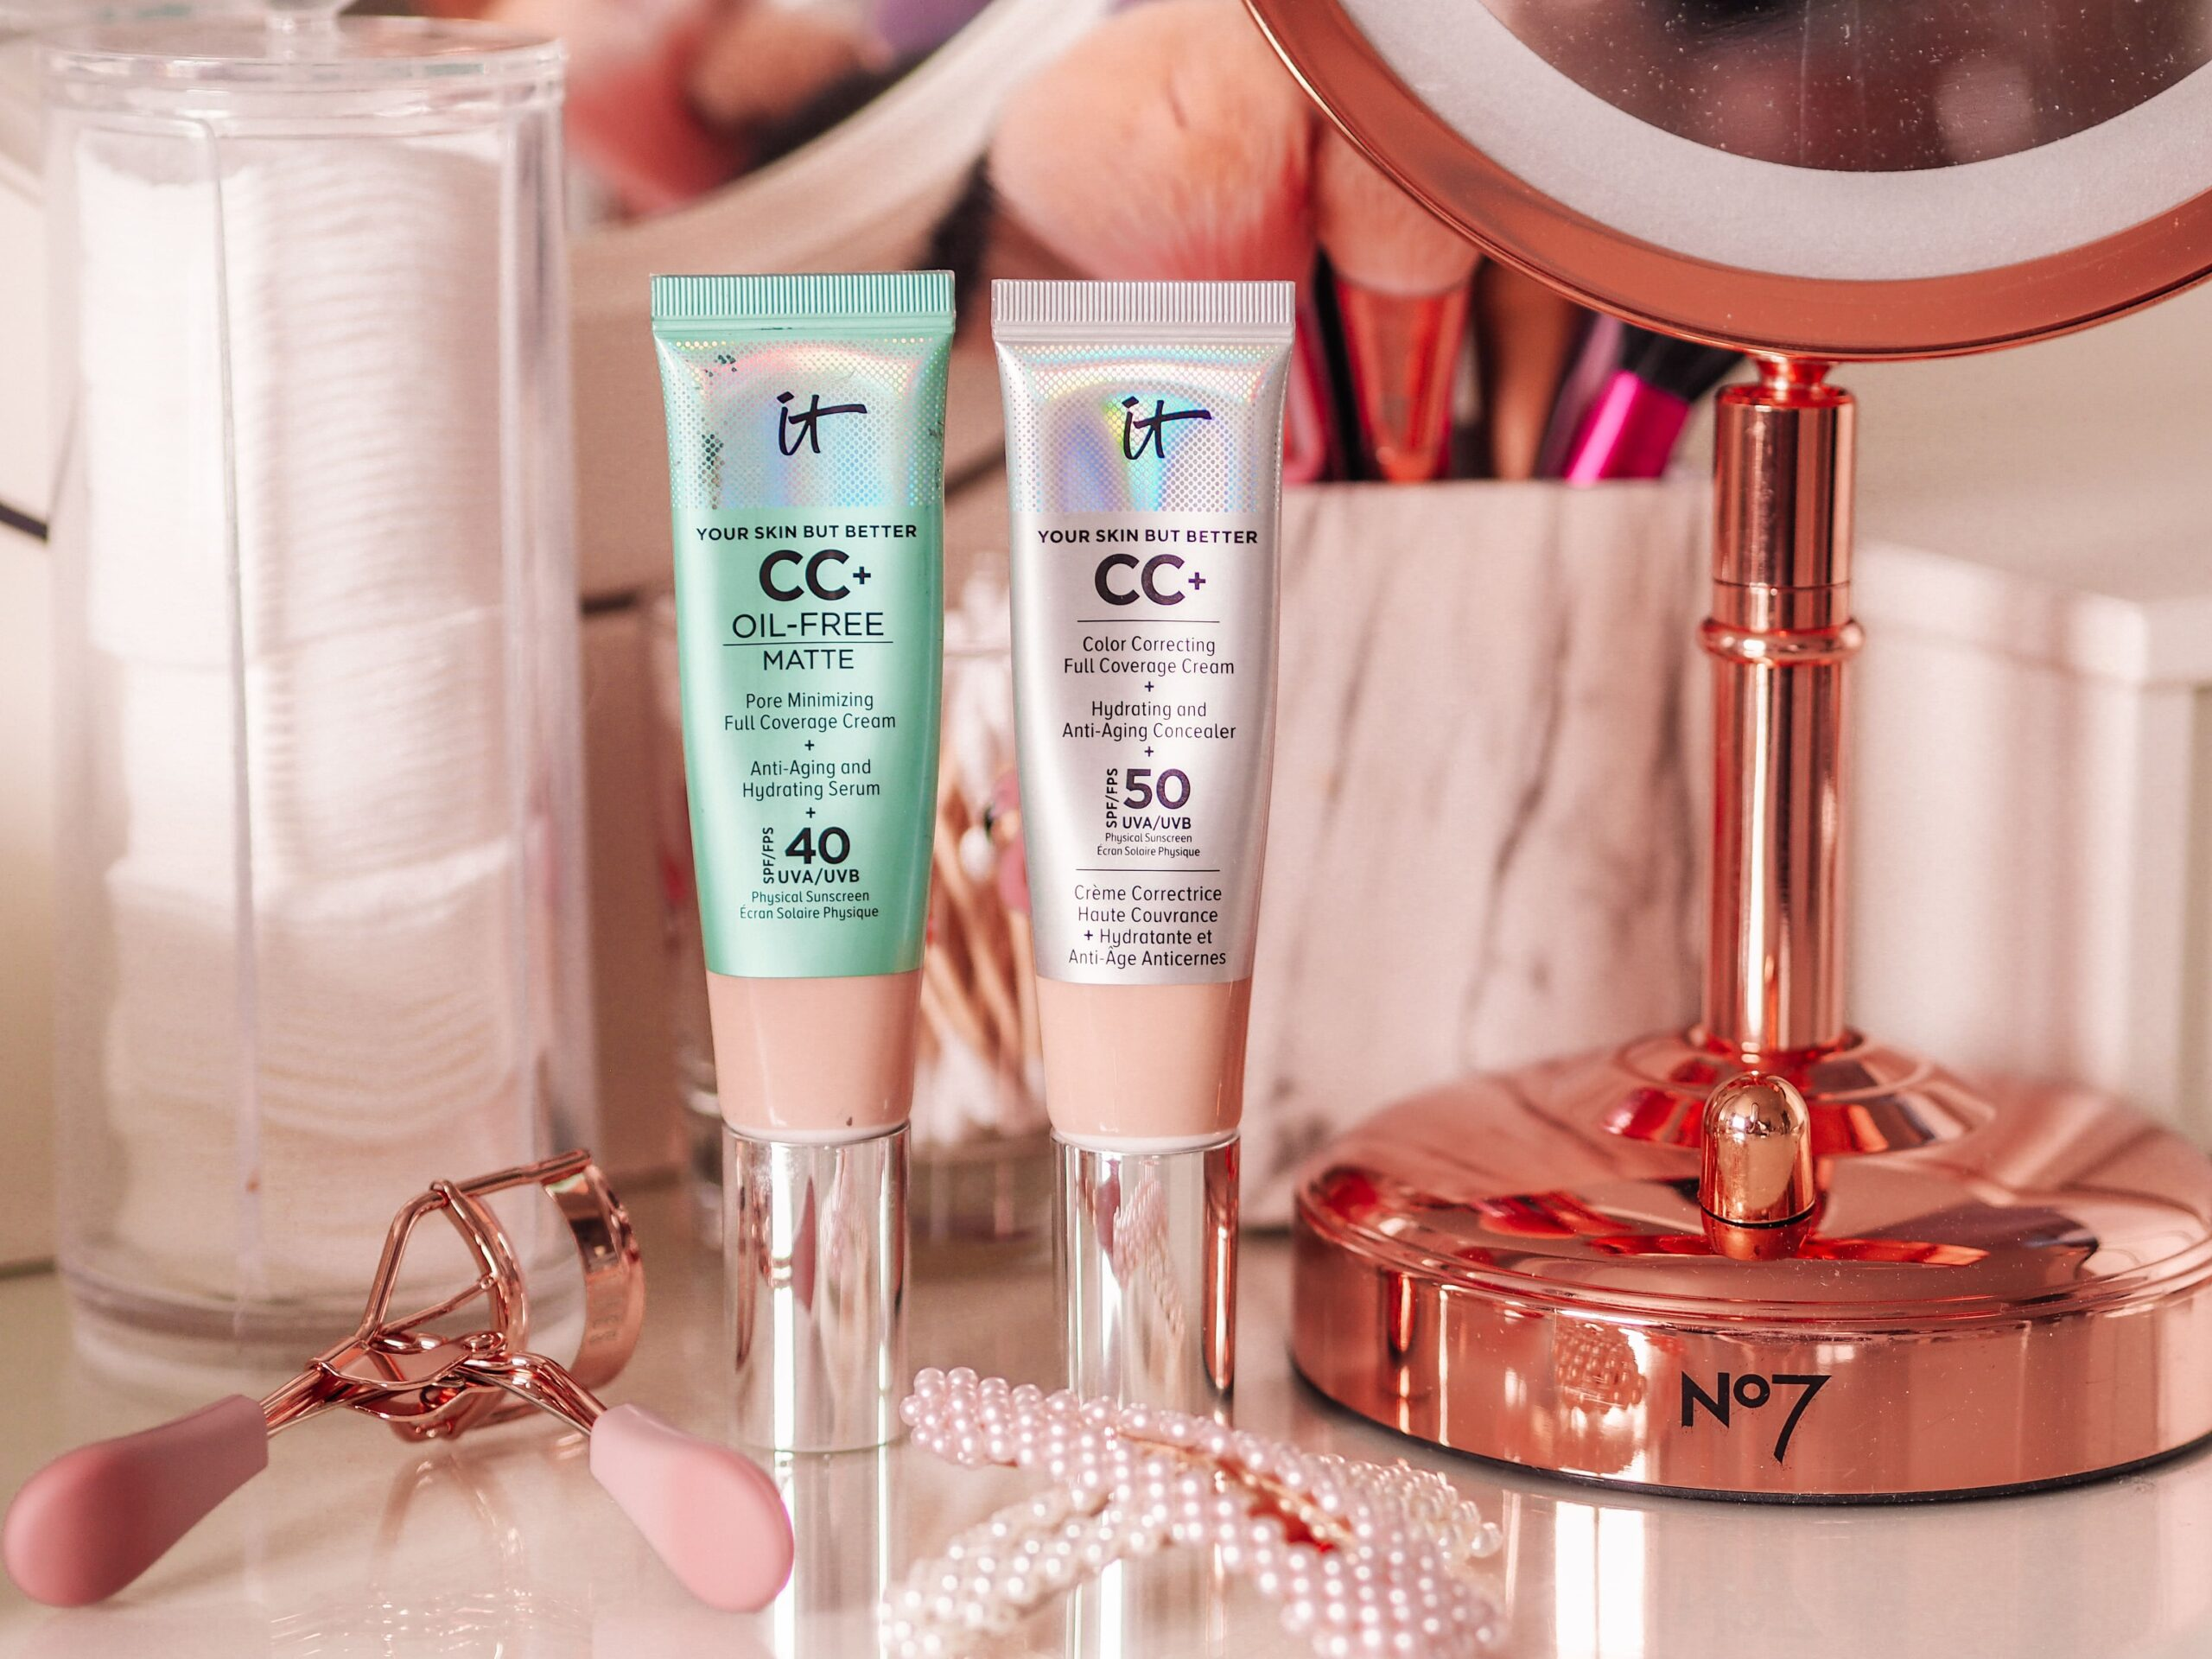 Which IT Cosmetics Your Skin But Better CC+ Cream is best for oily skin?